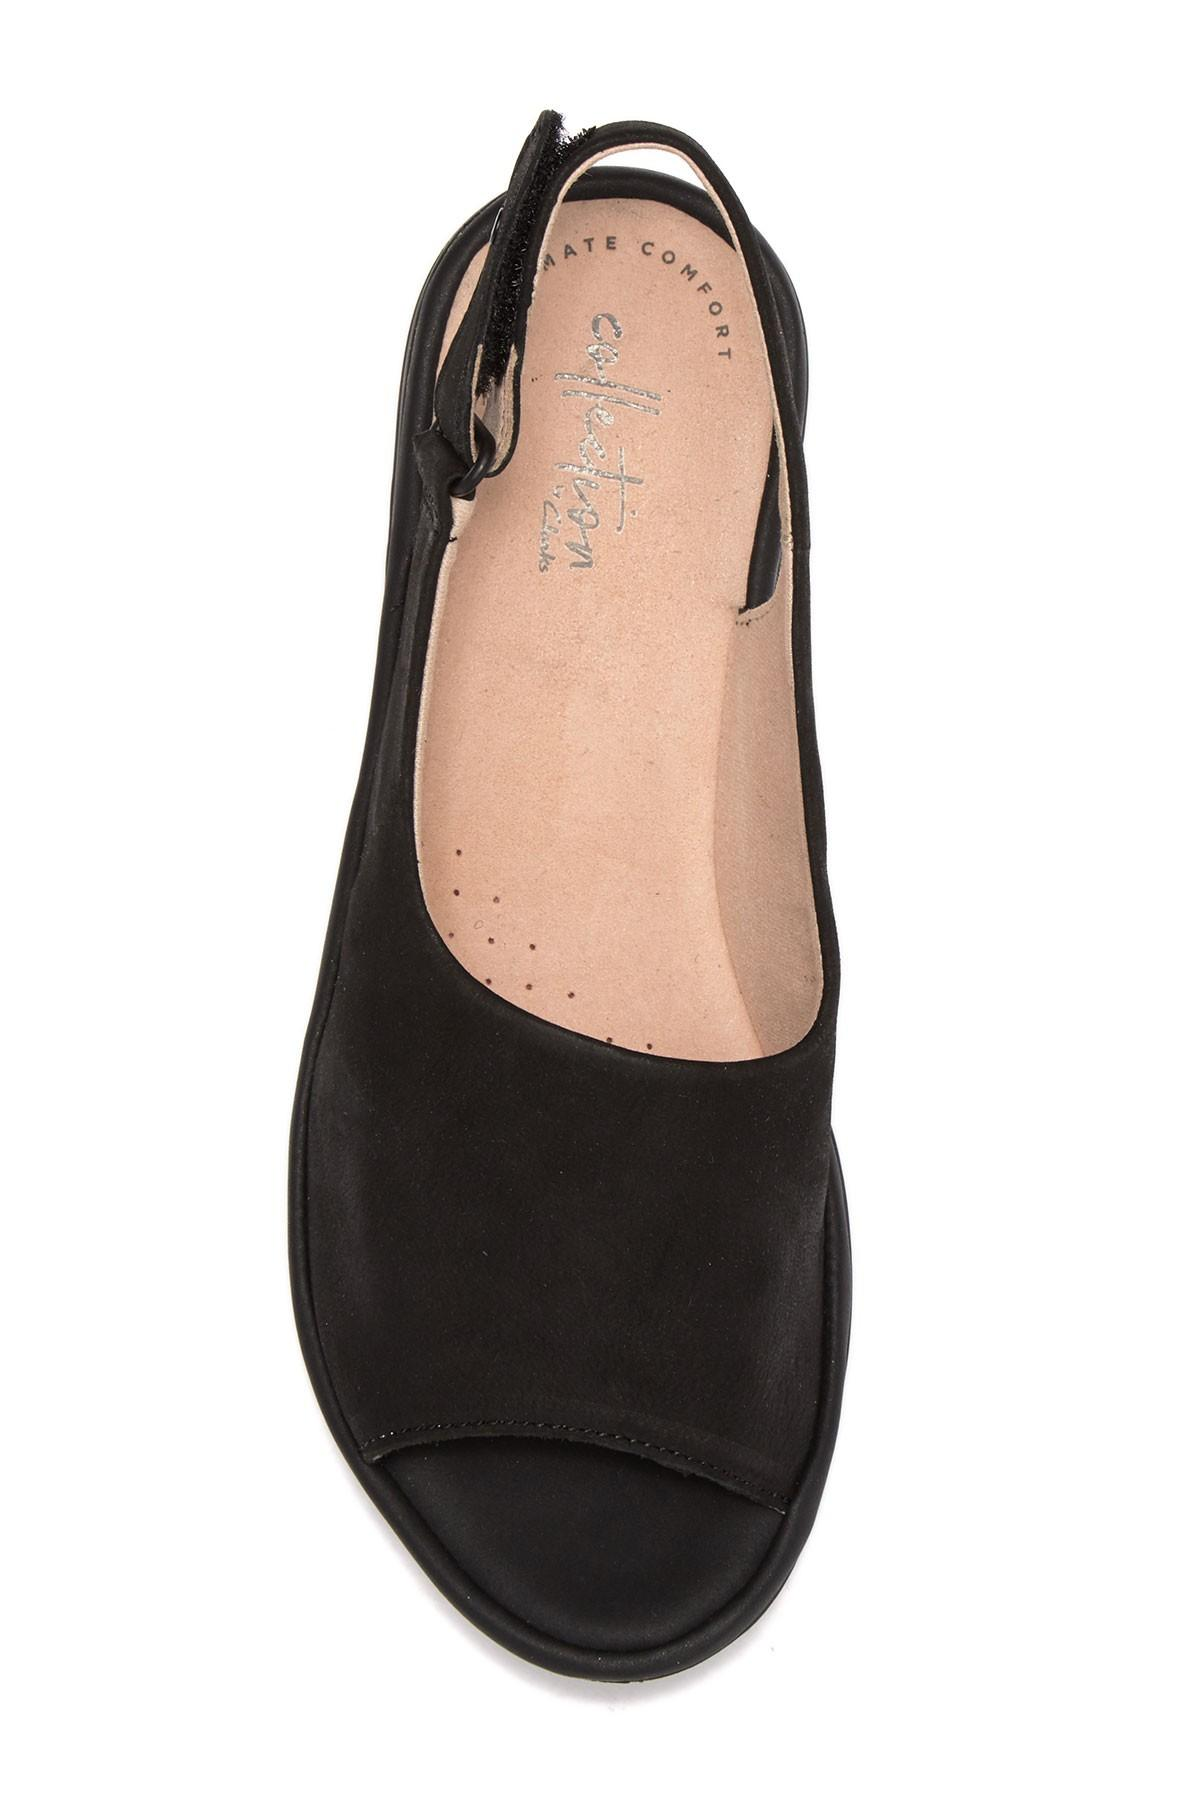 e30d34a1f519 Lyst - Clarks Reedly Shania Wedge Sandals in Black - Save 38%